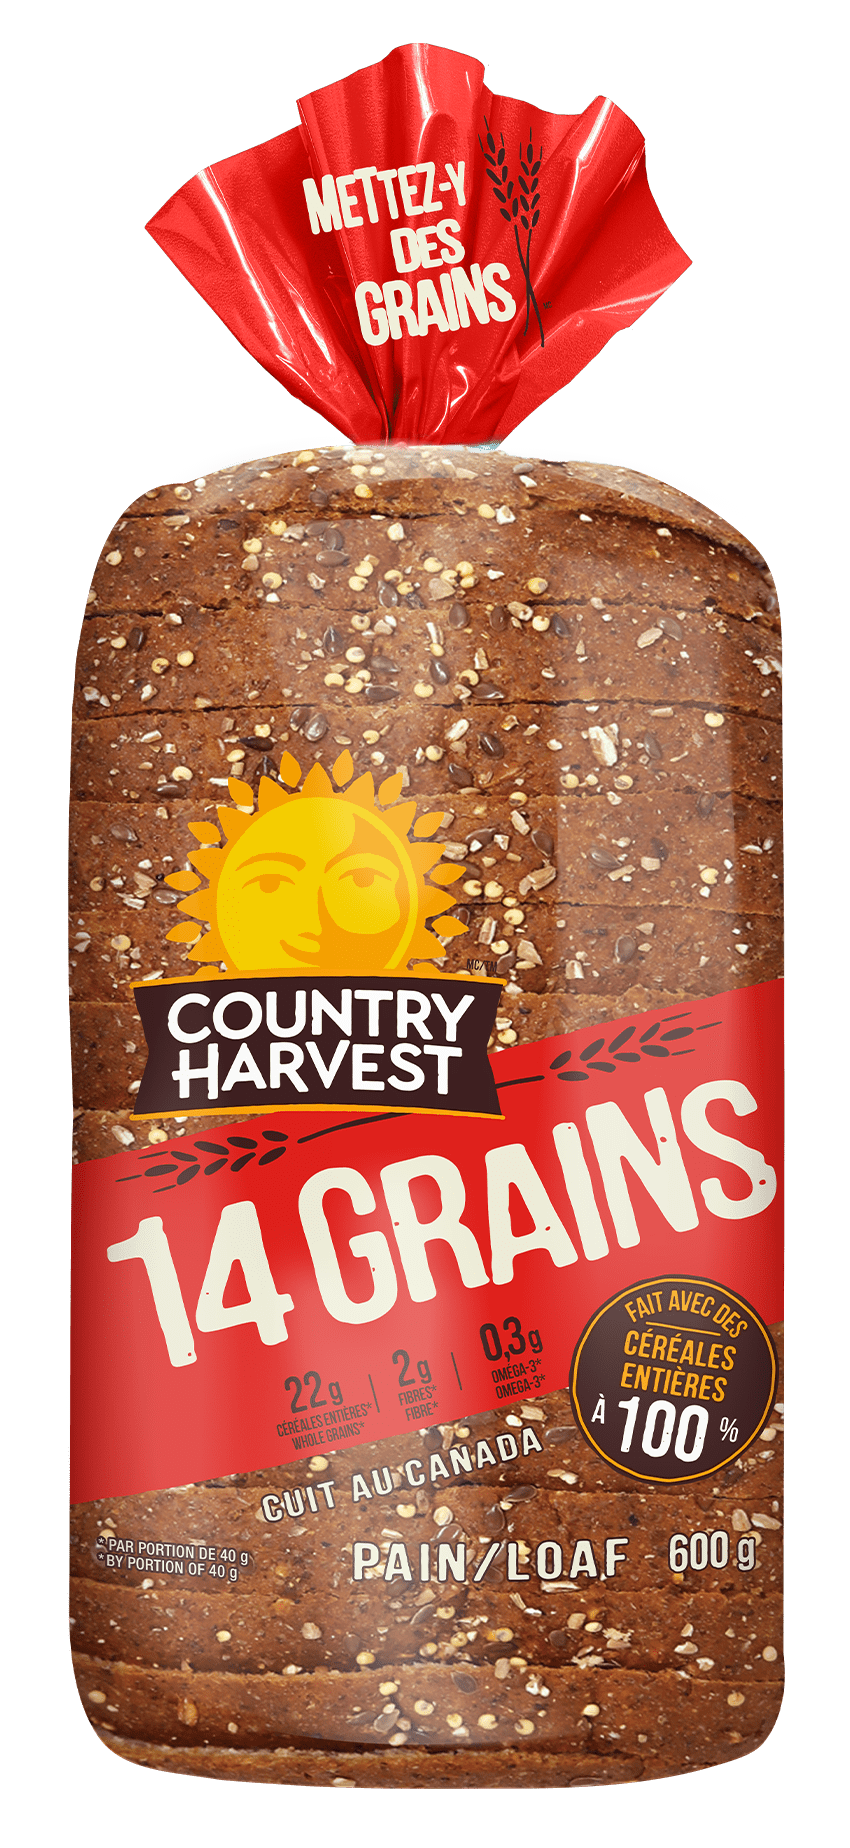 Country-Harvest-14-Grains